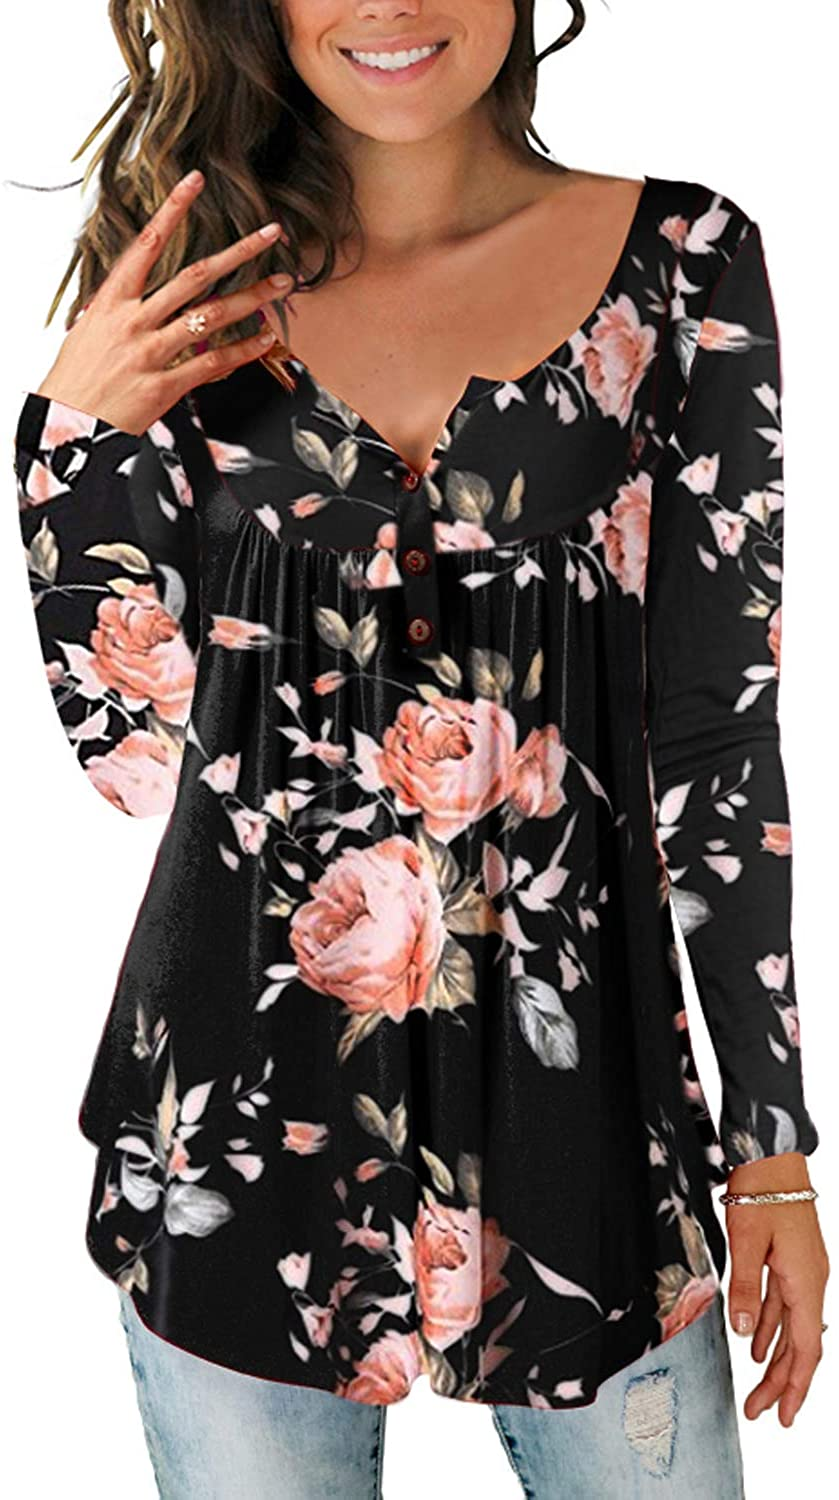 Women's Paisley Printed Button Top Long Sleeve V Neck Pleated Casual Flare Tunic Loose Blouse Shirt, Black, Small